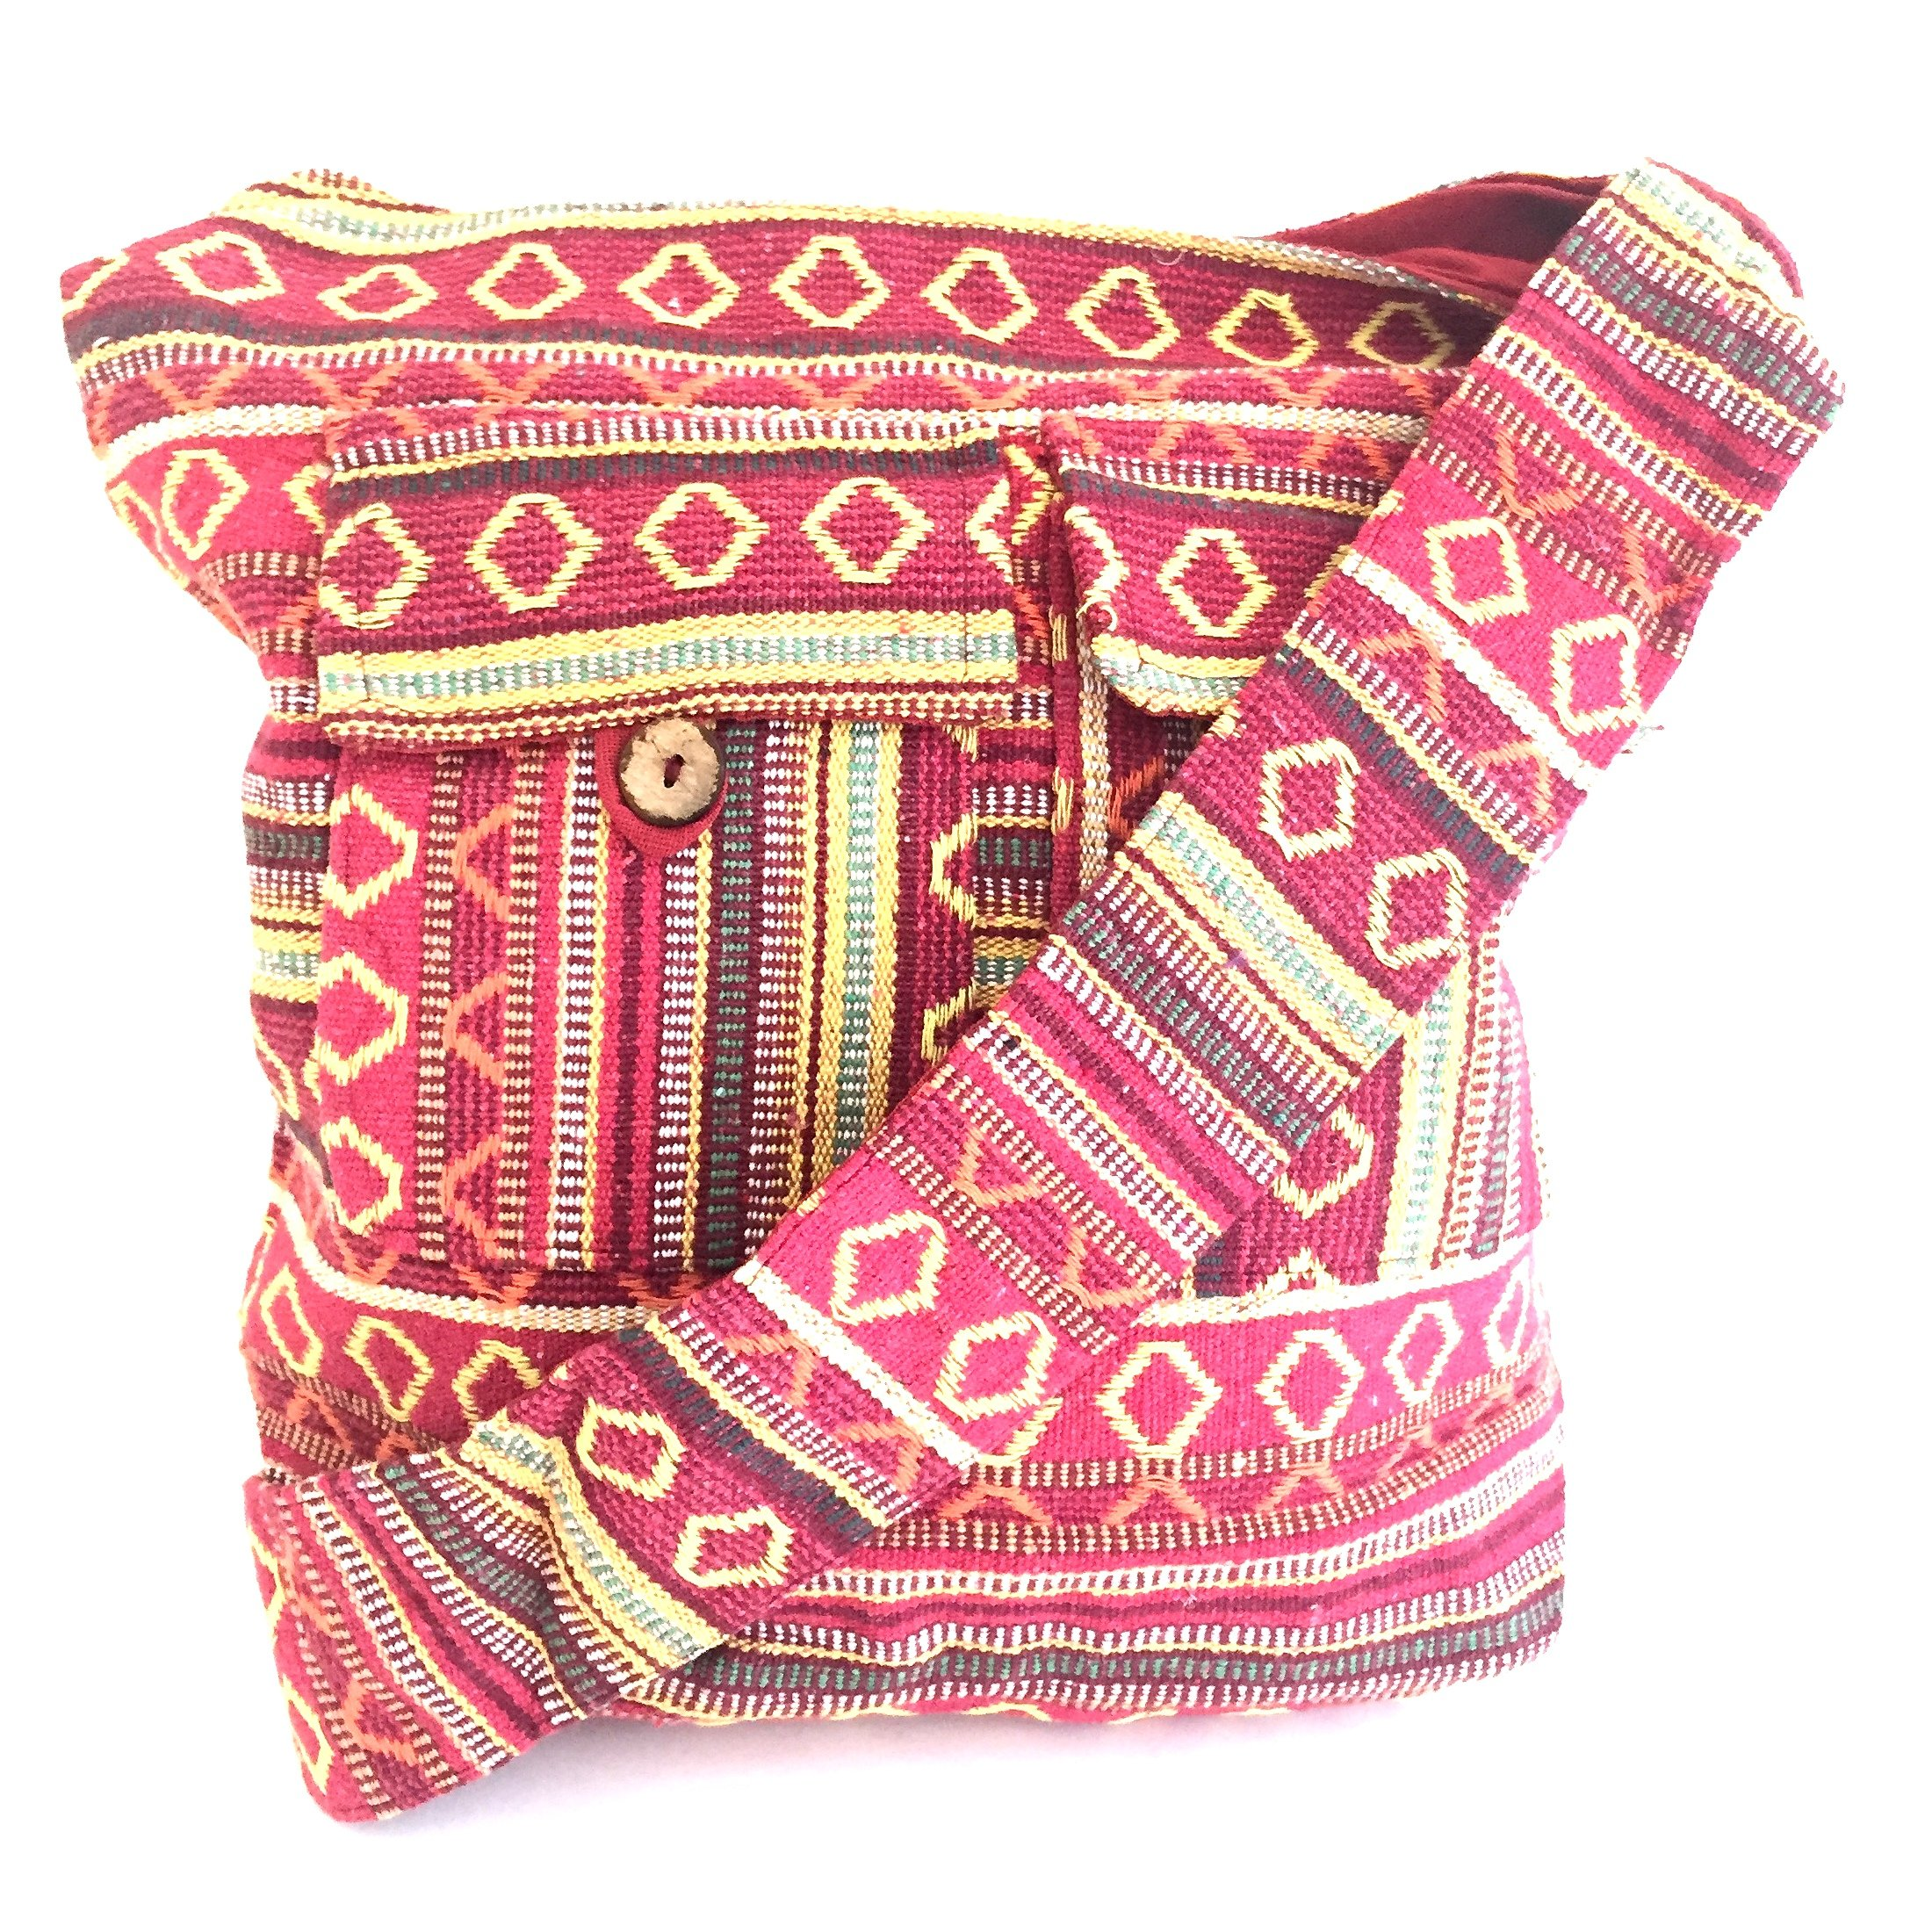 Woven Cotton Aztec Hippie Boho Hobo Messenger Shoulder Bag Large Beach Sling Cross Body Bag - OMA BRAND